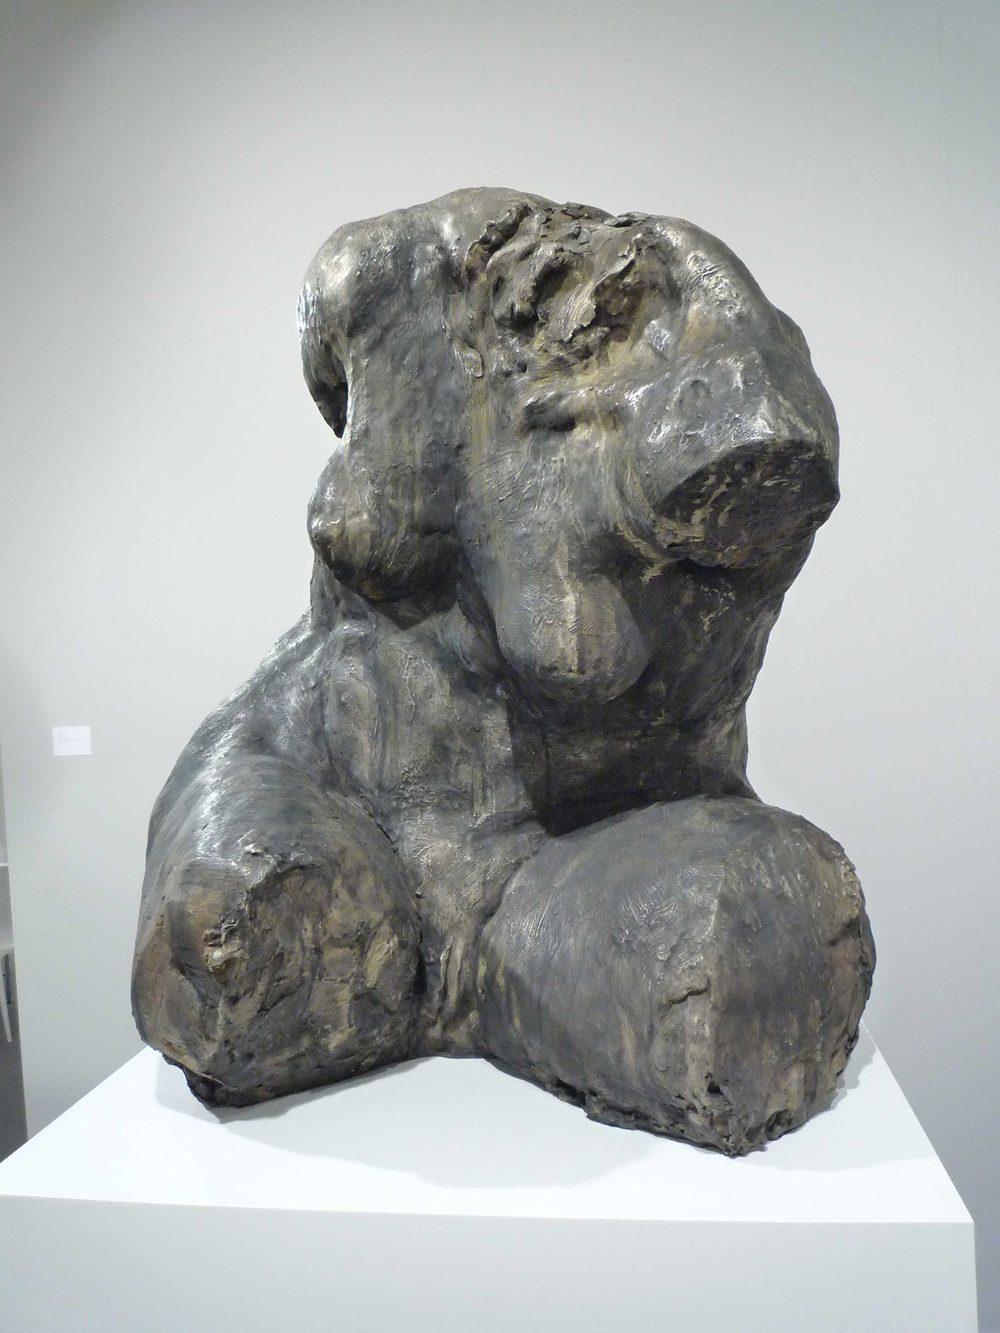 Untitled (Torso), 2010. Bronze 38 x 30 x 30 in.